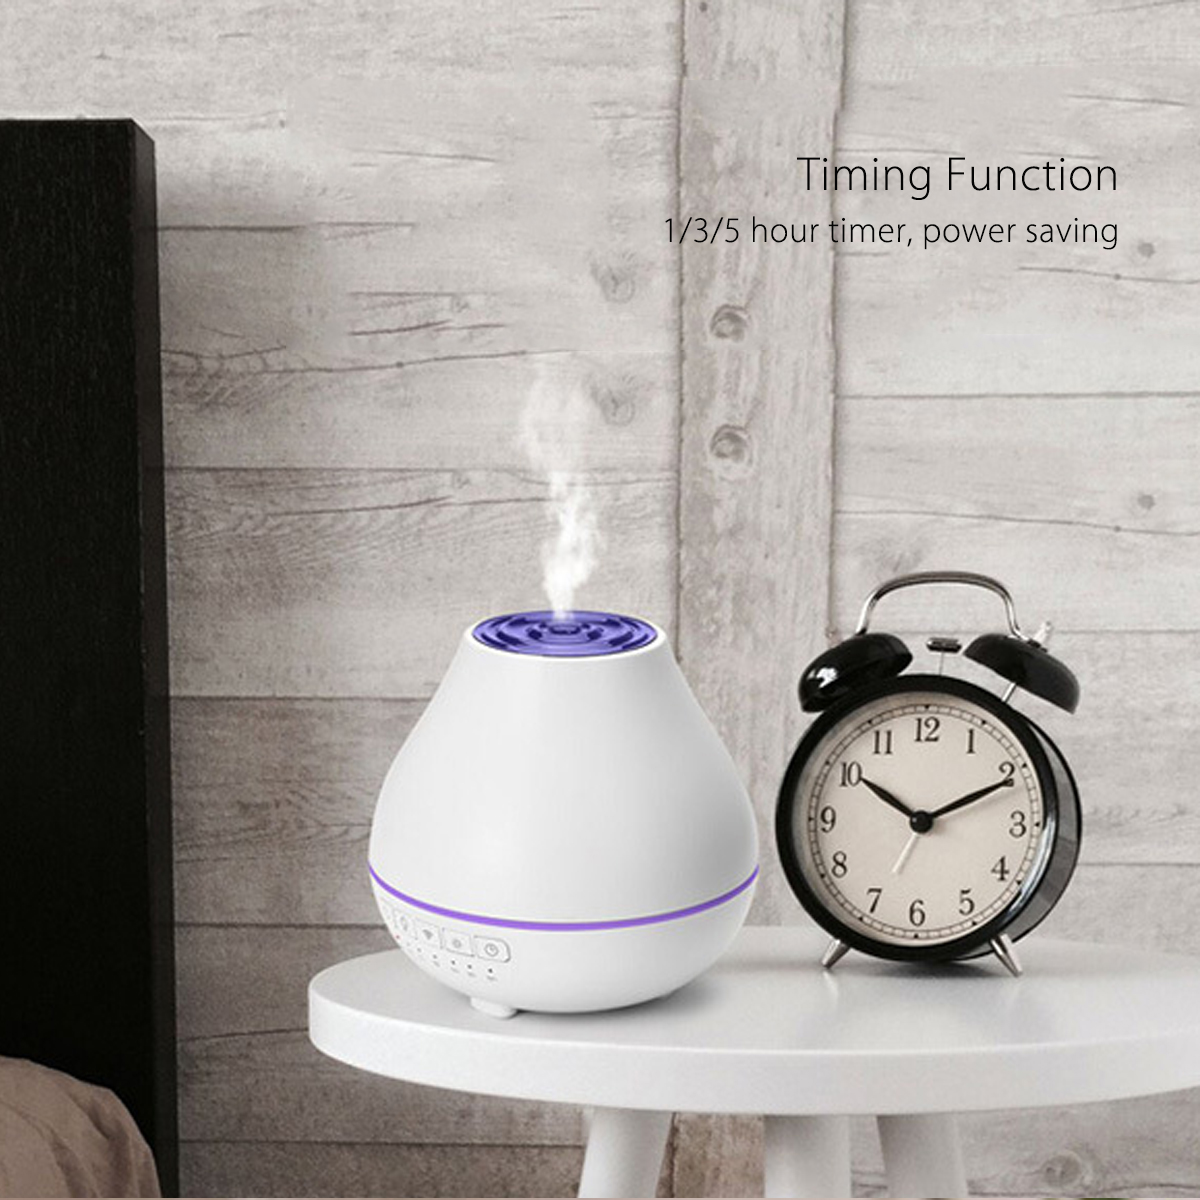 Oittm Smart WiFi Humidifier For Amazon Alexa & Google Home